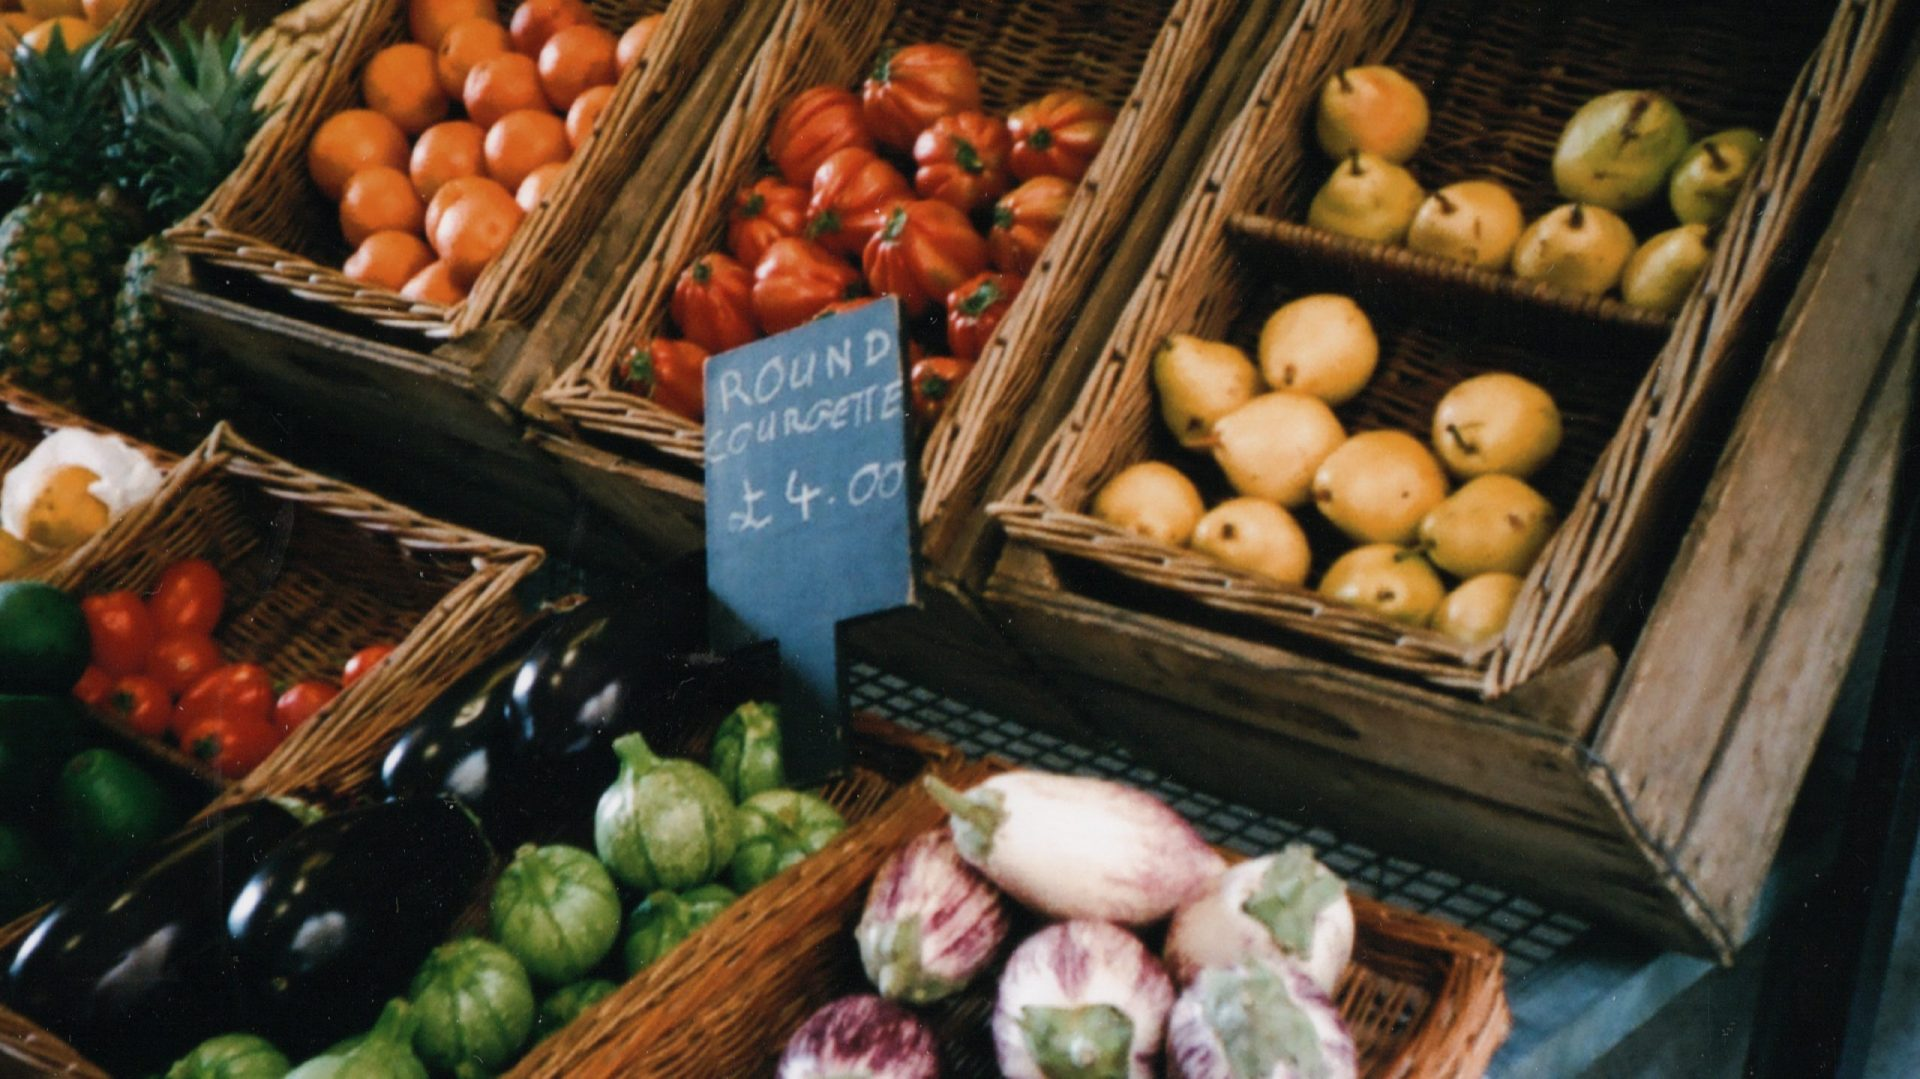 ERFPA - East Riding Food Poverty Alliance